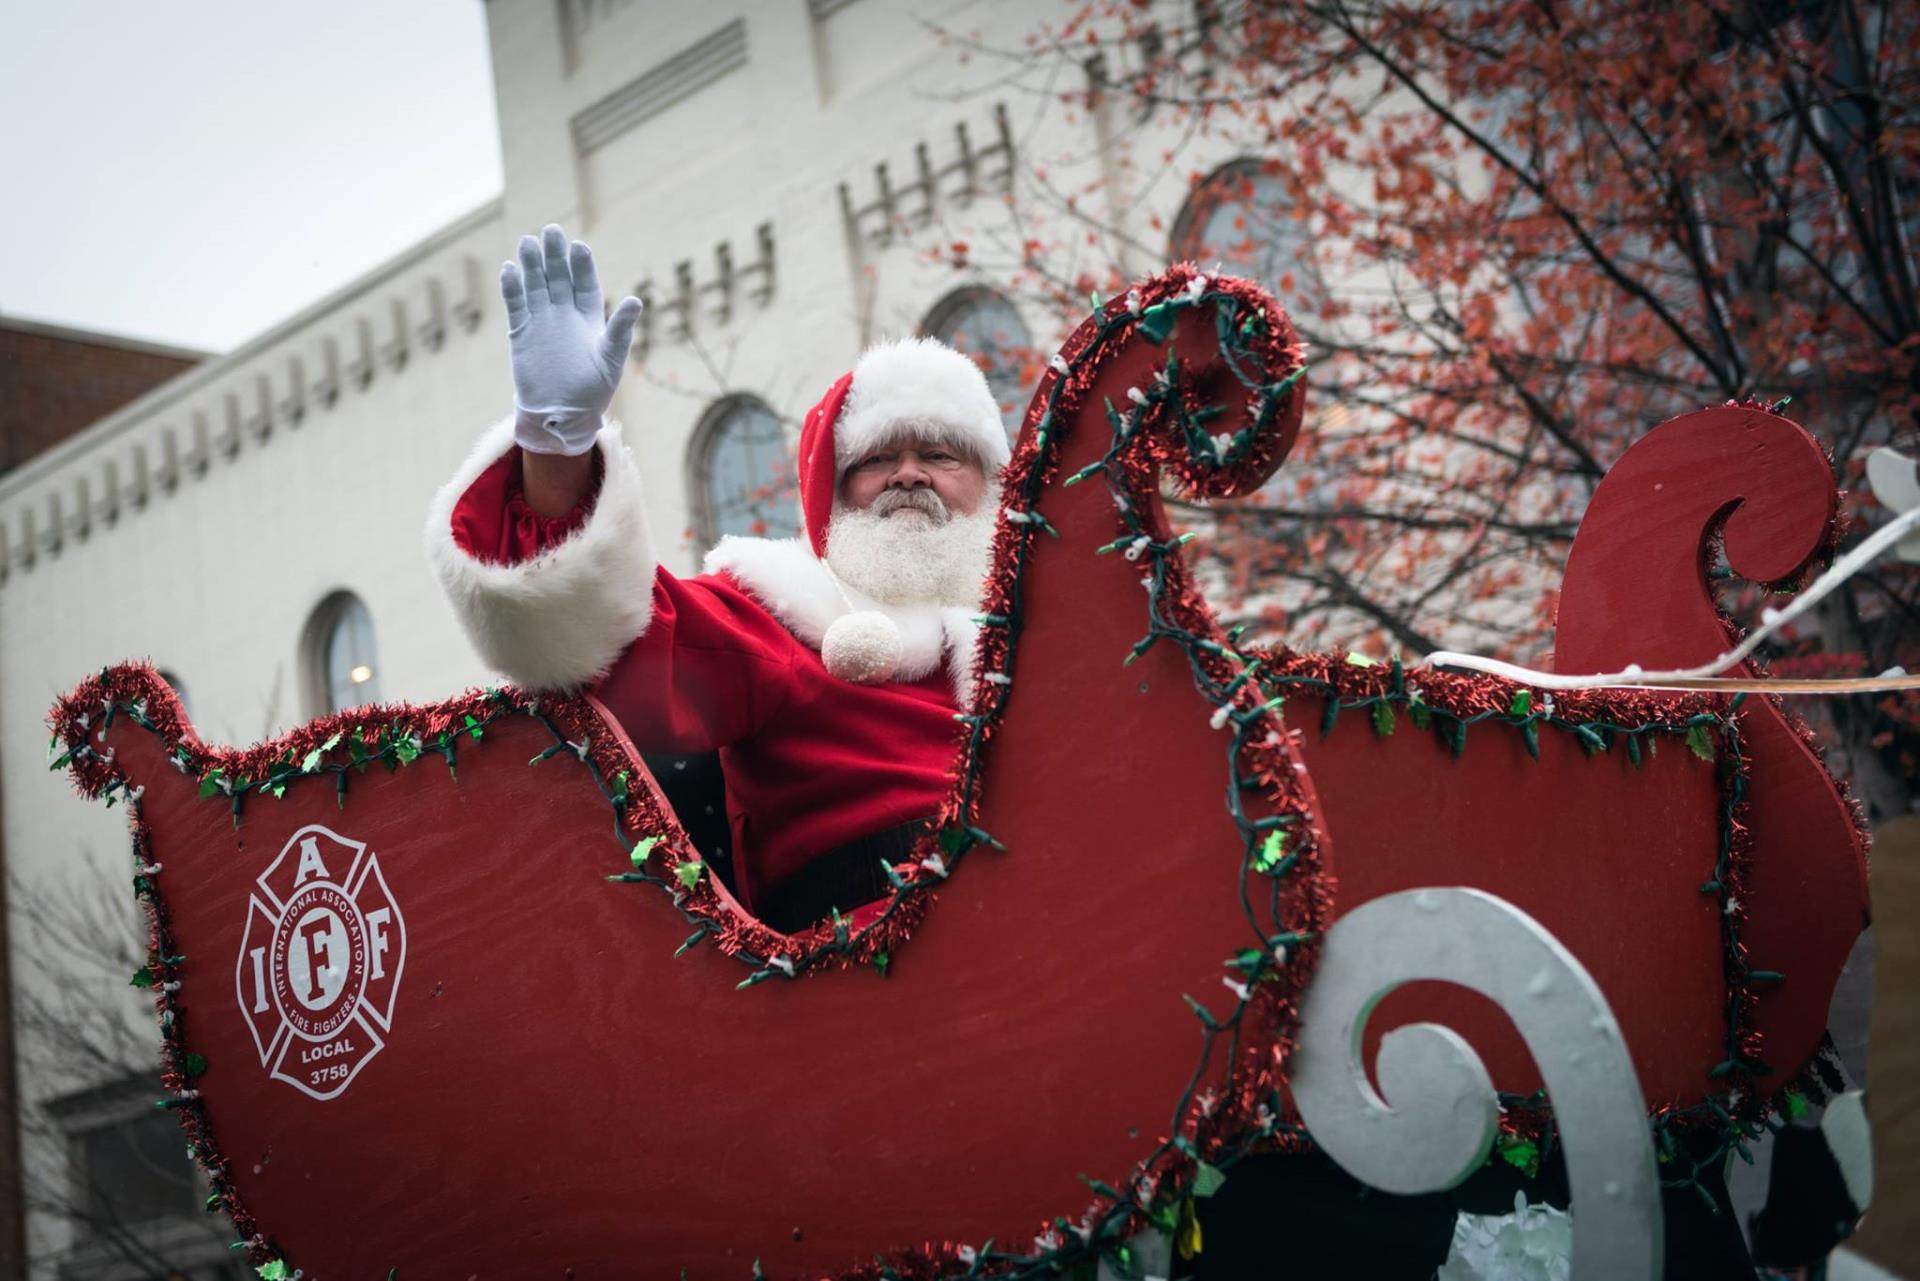 Franklin Tn Christmas 2020 City of Franklin Plans Christmas Holiday Events in December